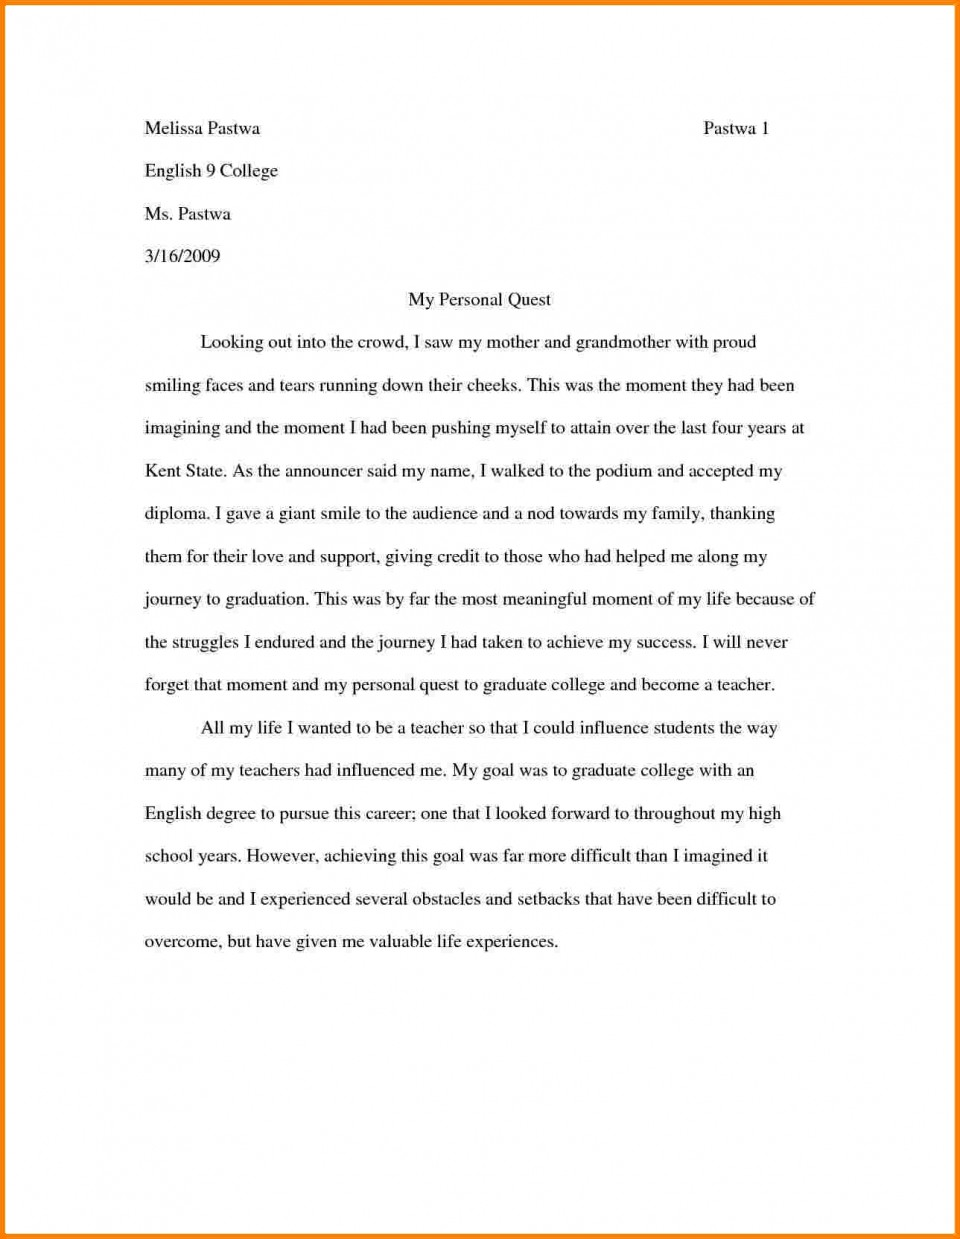 020 3341381556 How To Write Proposal20nt Essay Topics Buy Researchs Cheap Examples20 Good For Awesome Research Papers Interesting Paper History Topic College English High School Students In The Philippines 960